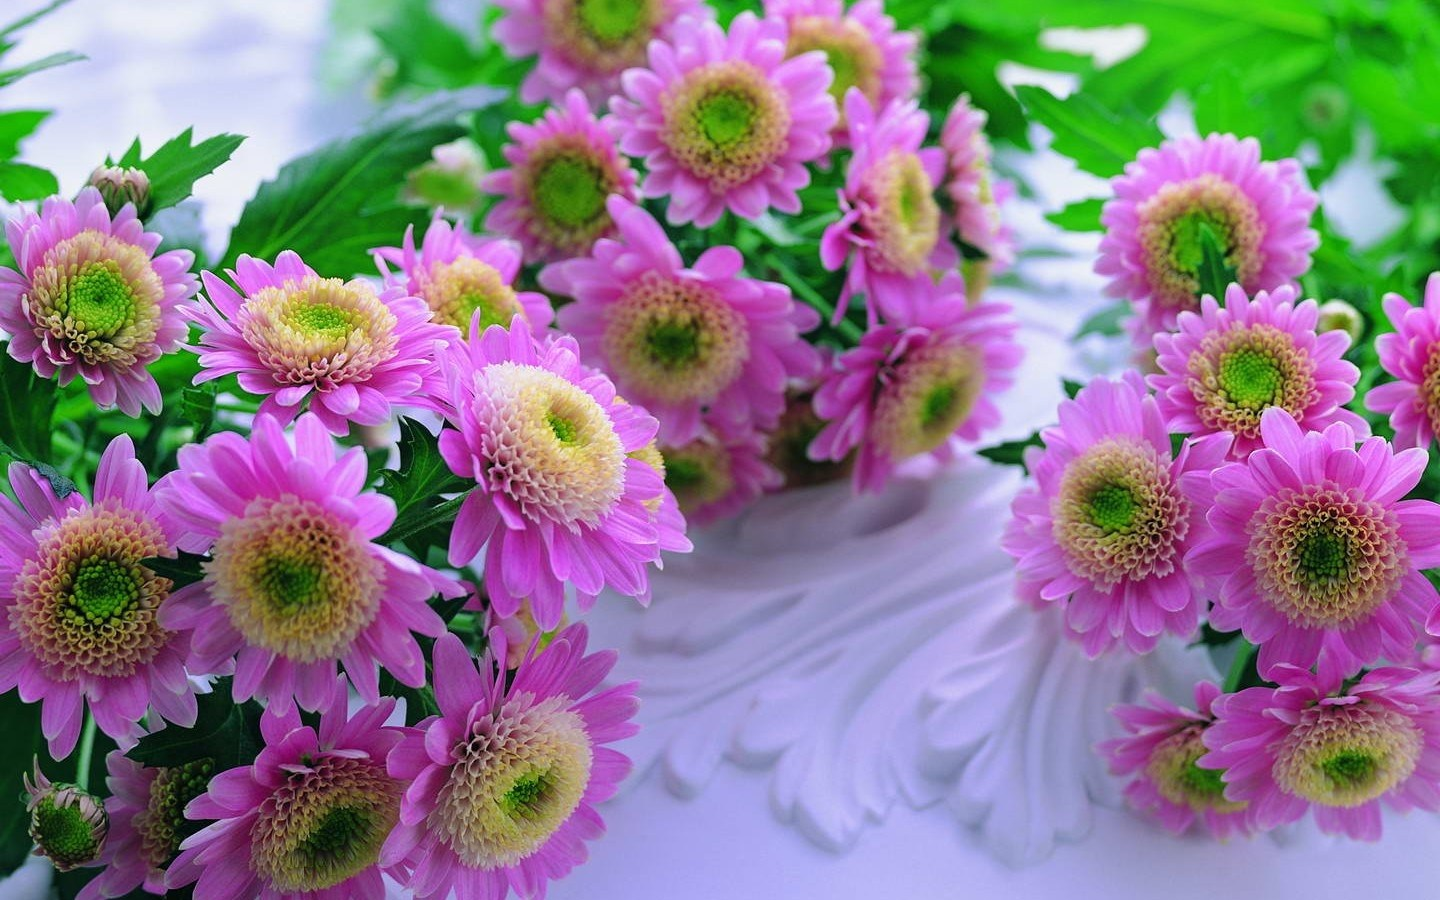 Wallpaper Beautiful Flowers Free Download